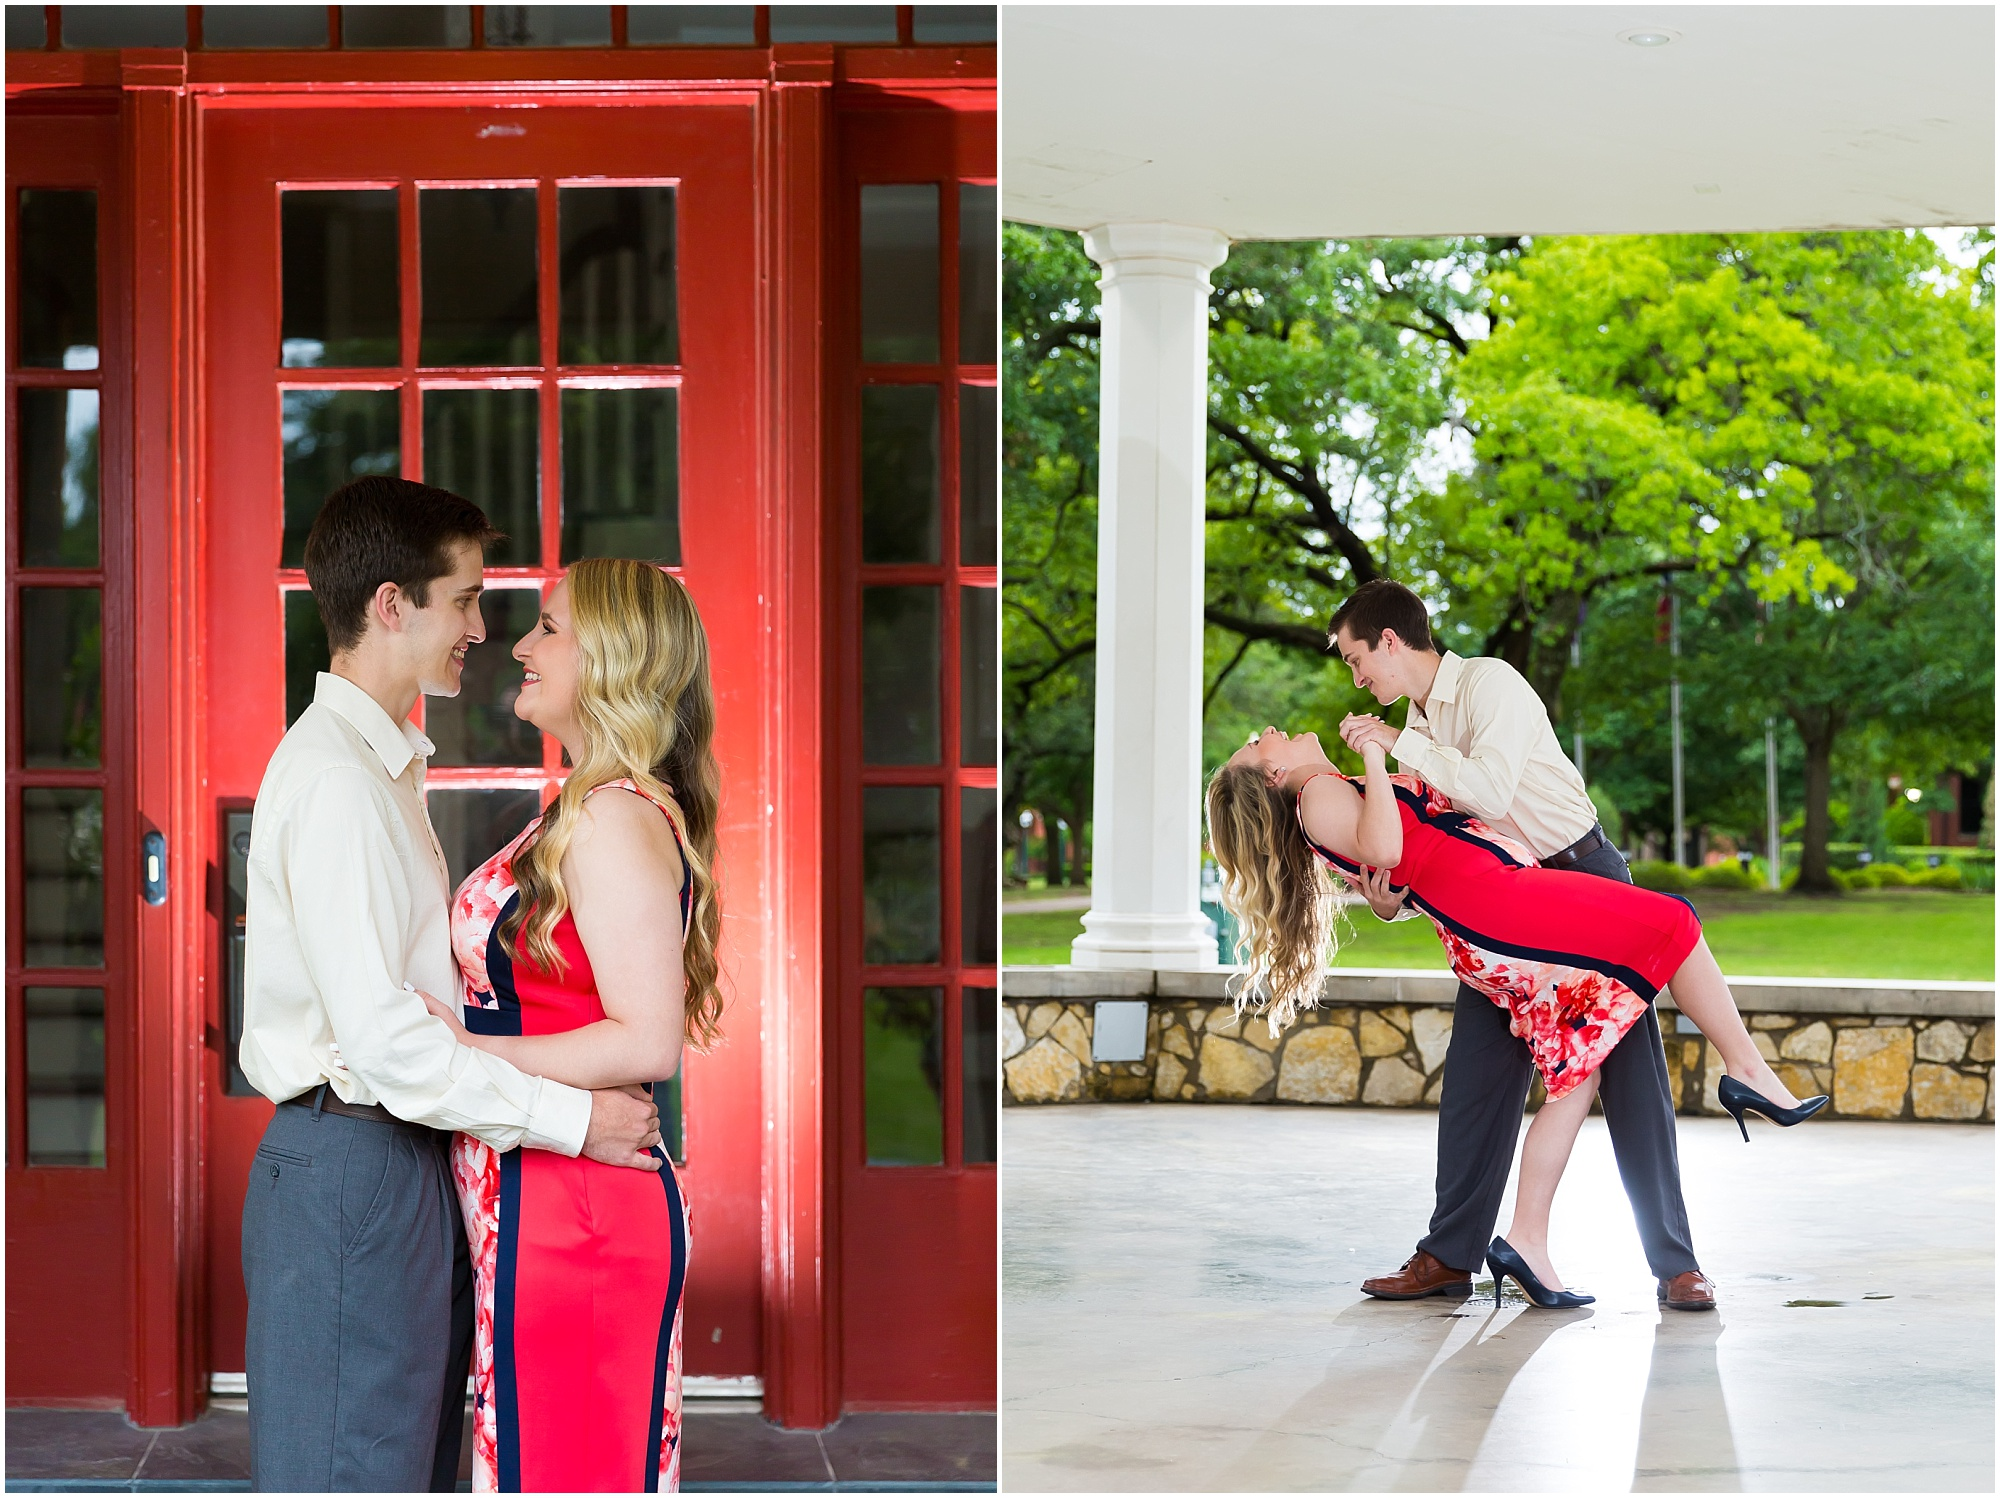 A couple dances in the gazebo at Tarleton State University during their engagement session - Jason & Melaina Photography - www.jasonandmelaina.com